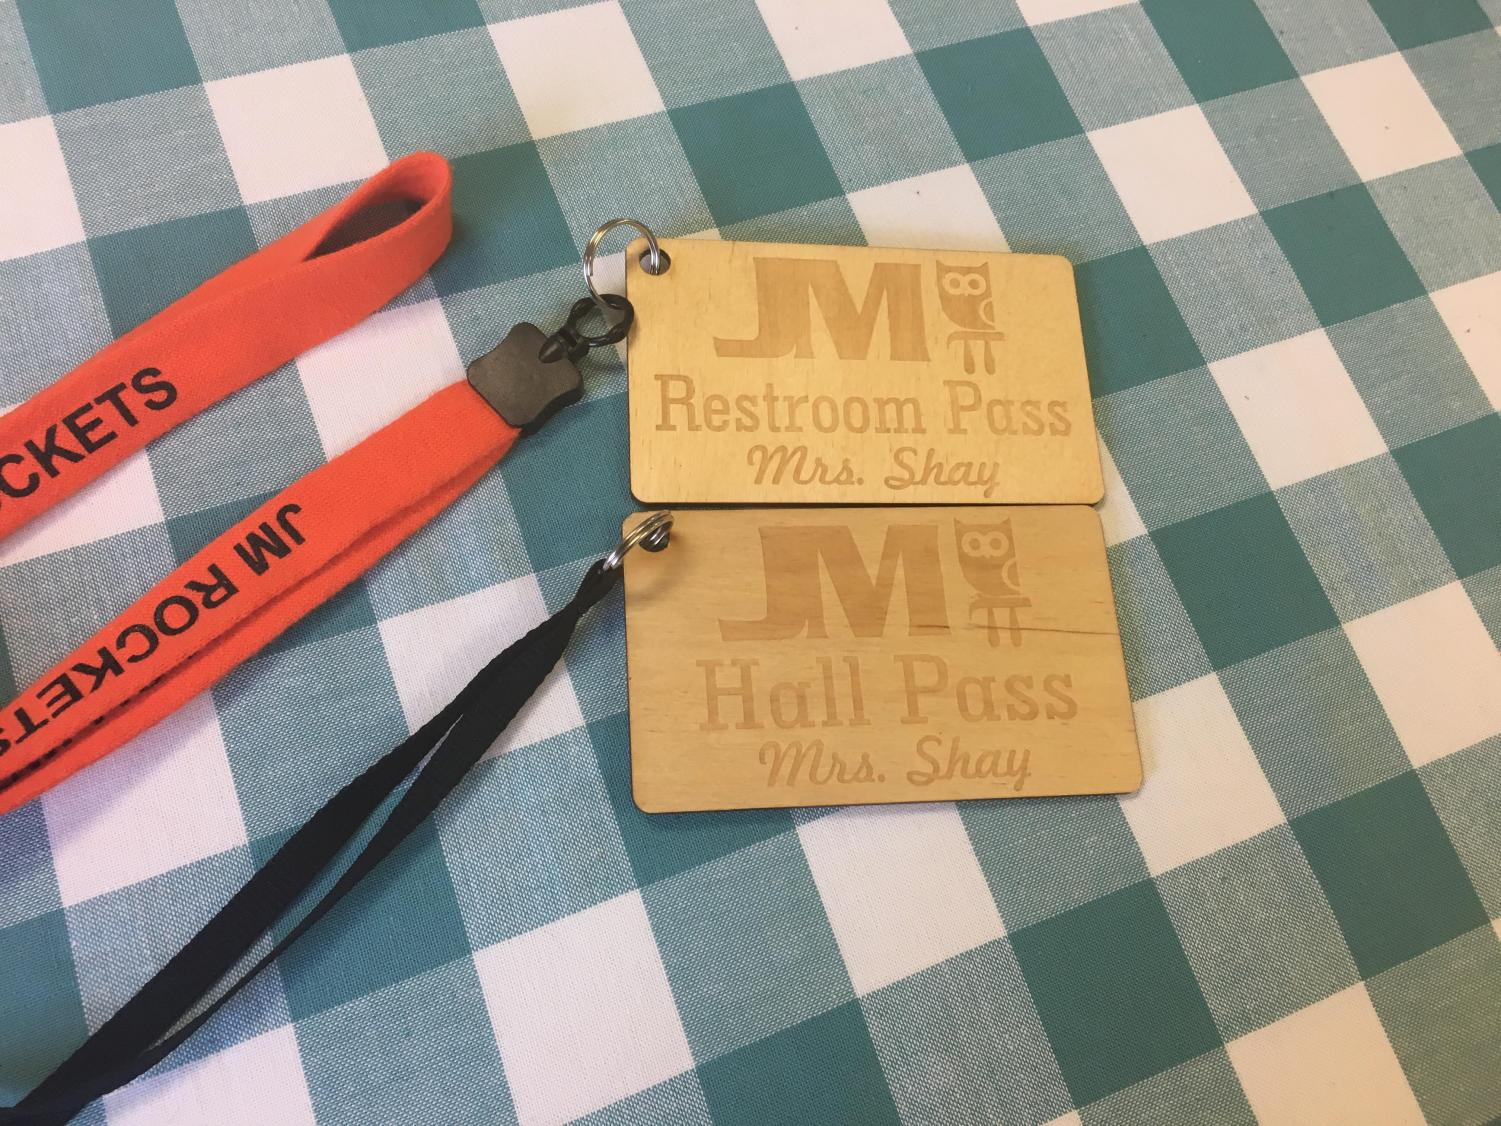 During a recent In-Service, teachers used the laser engraver to make their own hall passes.